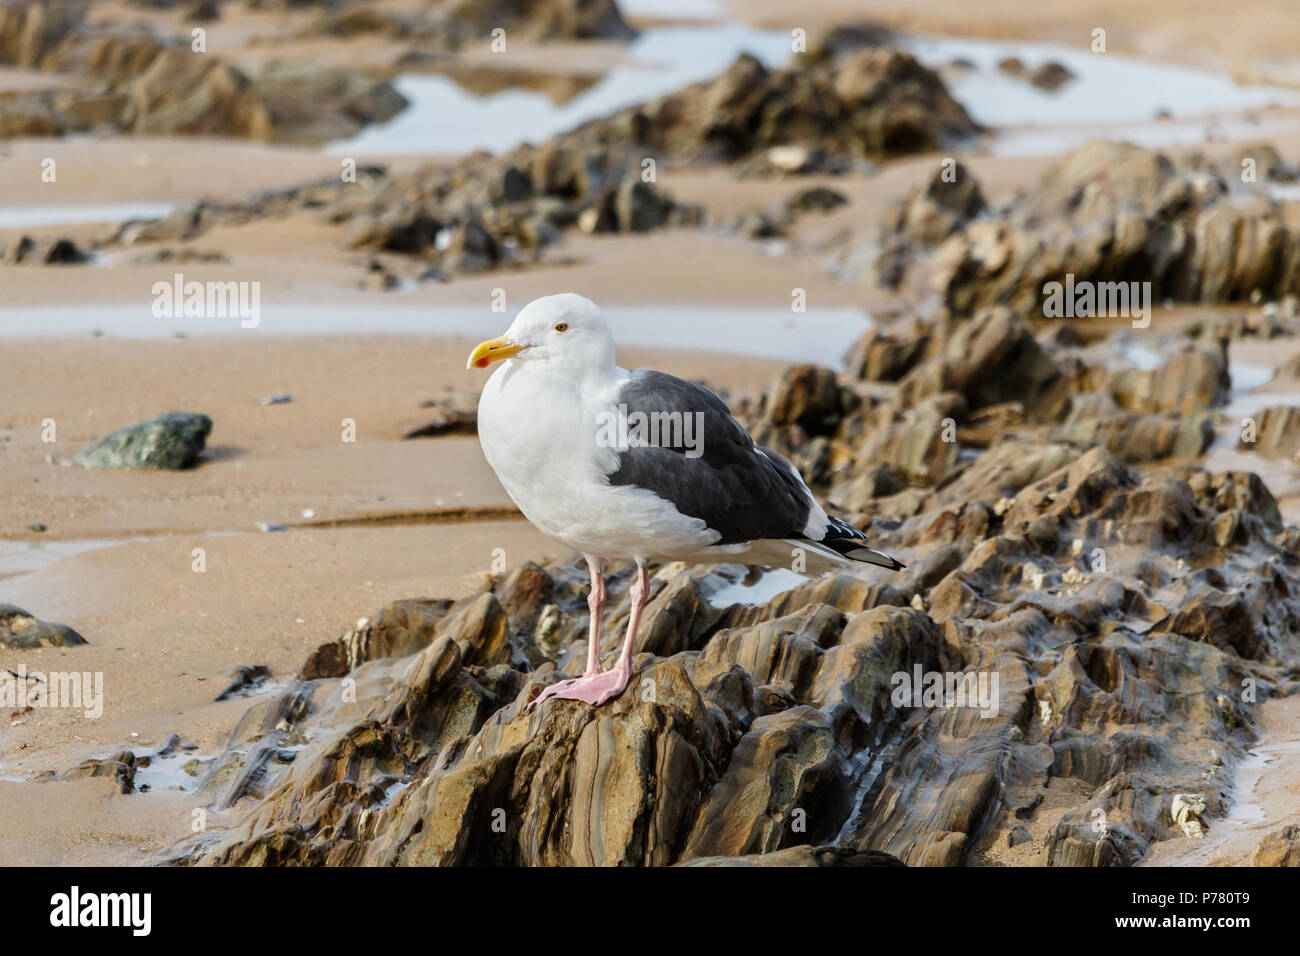 Western gull (Larus occidentalis) standing on rocks exposed by low tide in Laguna Beach, California. Stock Photo